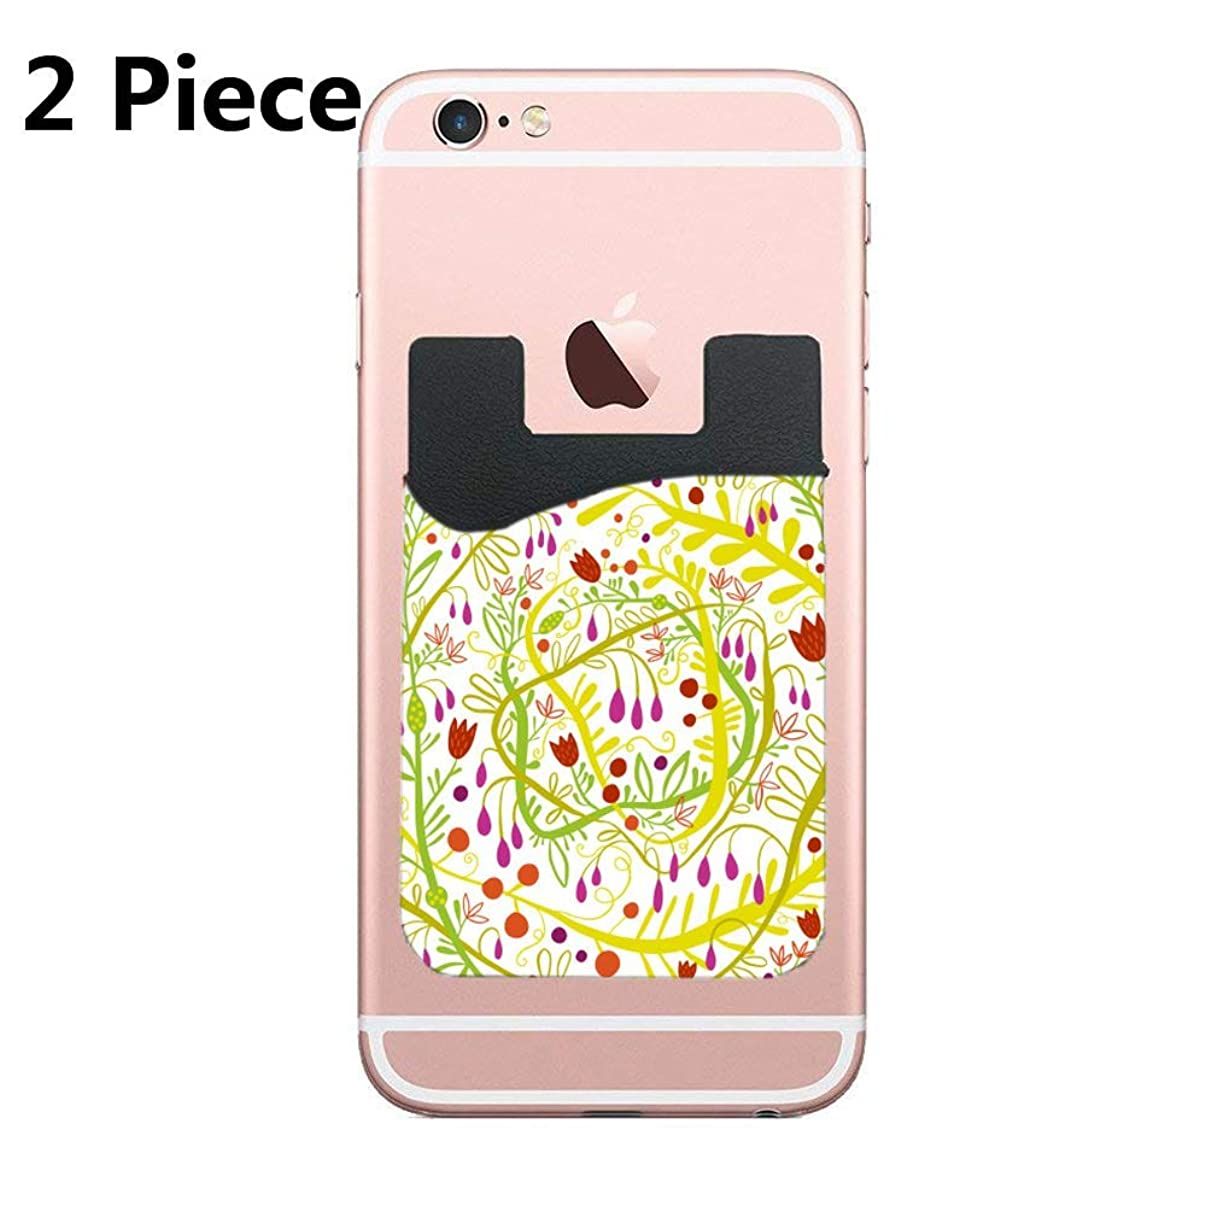 Cellcardphone Two Garden Gone Wild Cell Phone Stick on Wallet Card Holder Phone Pocket for All Smartphones